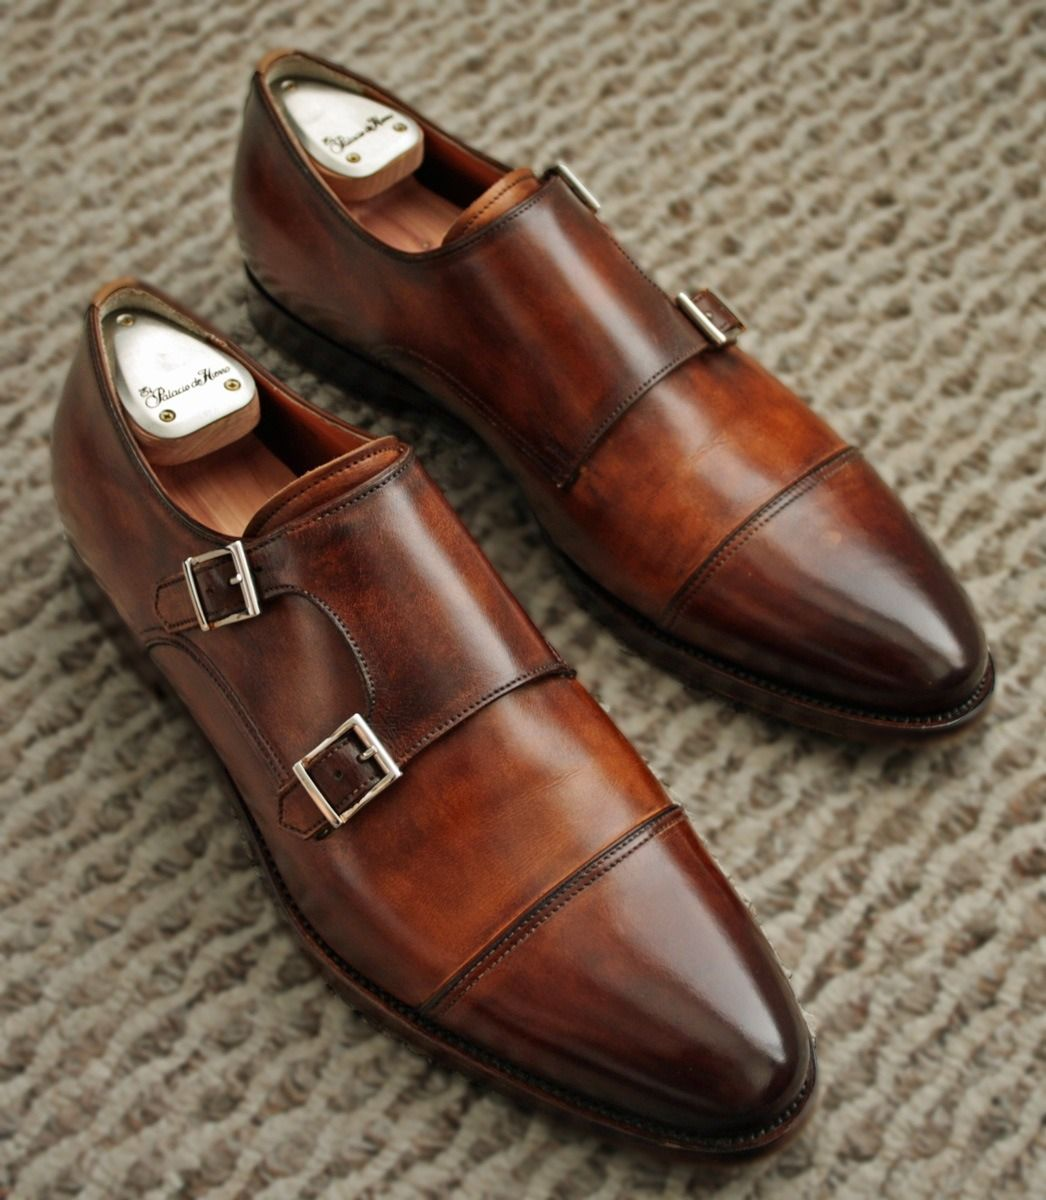 Shop Monk Strap men's dress shoes, wing tips, oxfords, loafers and more at Macy's! Get FREE shipping. Macy's Presents: The Edit- A curated mix of fashion and inspiration Check It Out. Cole Haan Men's Henry Grand Double-Monk Strap Oxfords Created for Macy's.